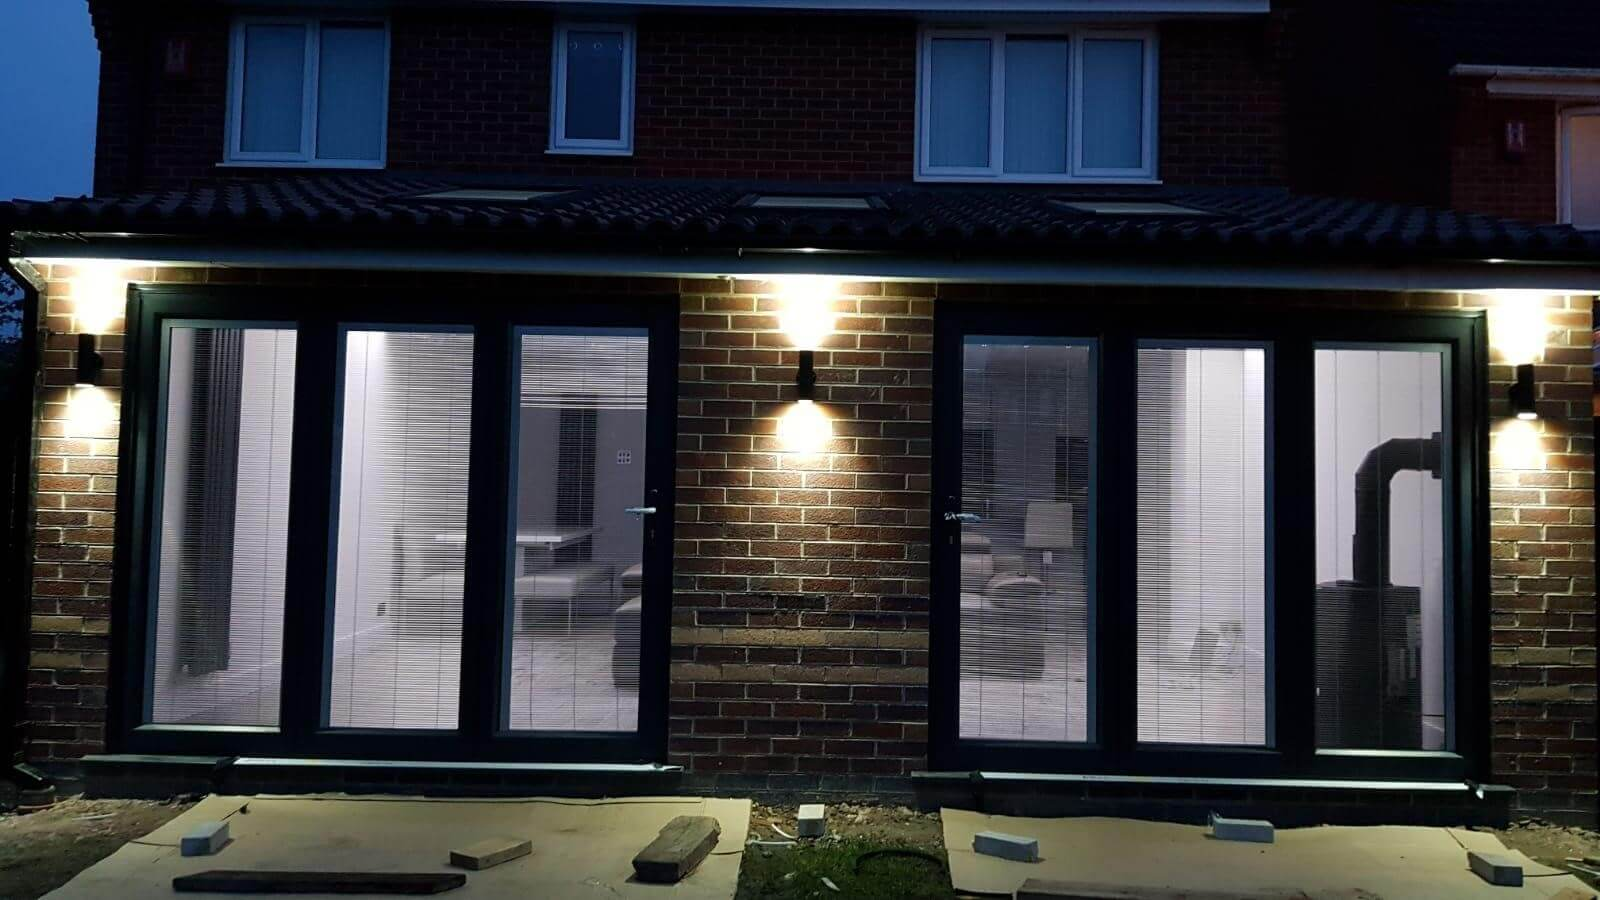 This image shows two sets of Aluminium Bi-fold doors installed on an extension in St Helens, Merseyside.